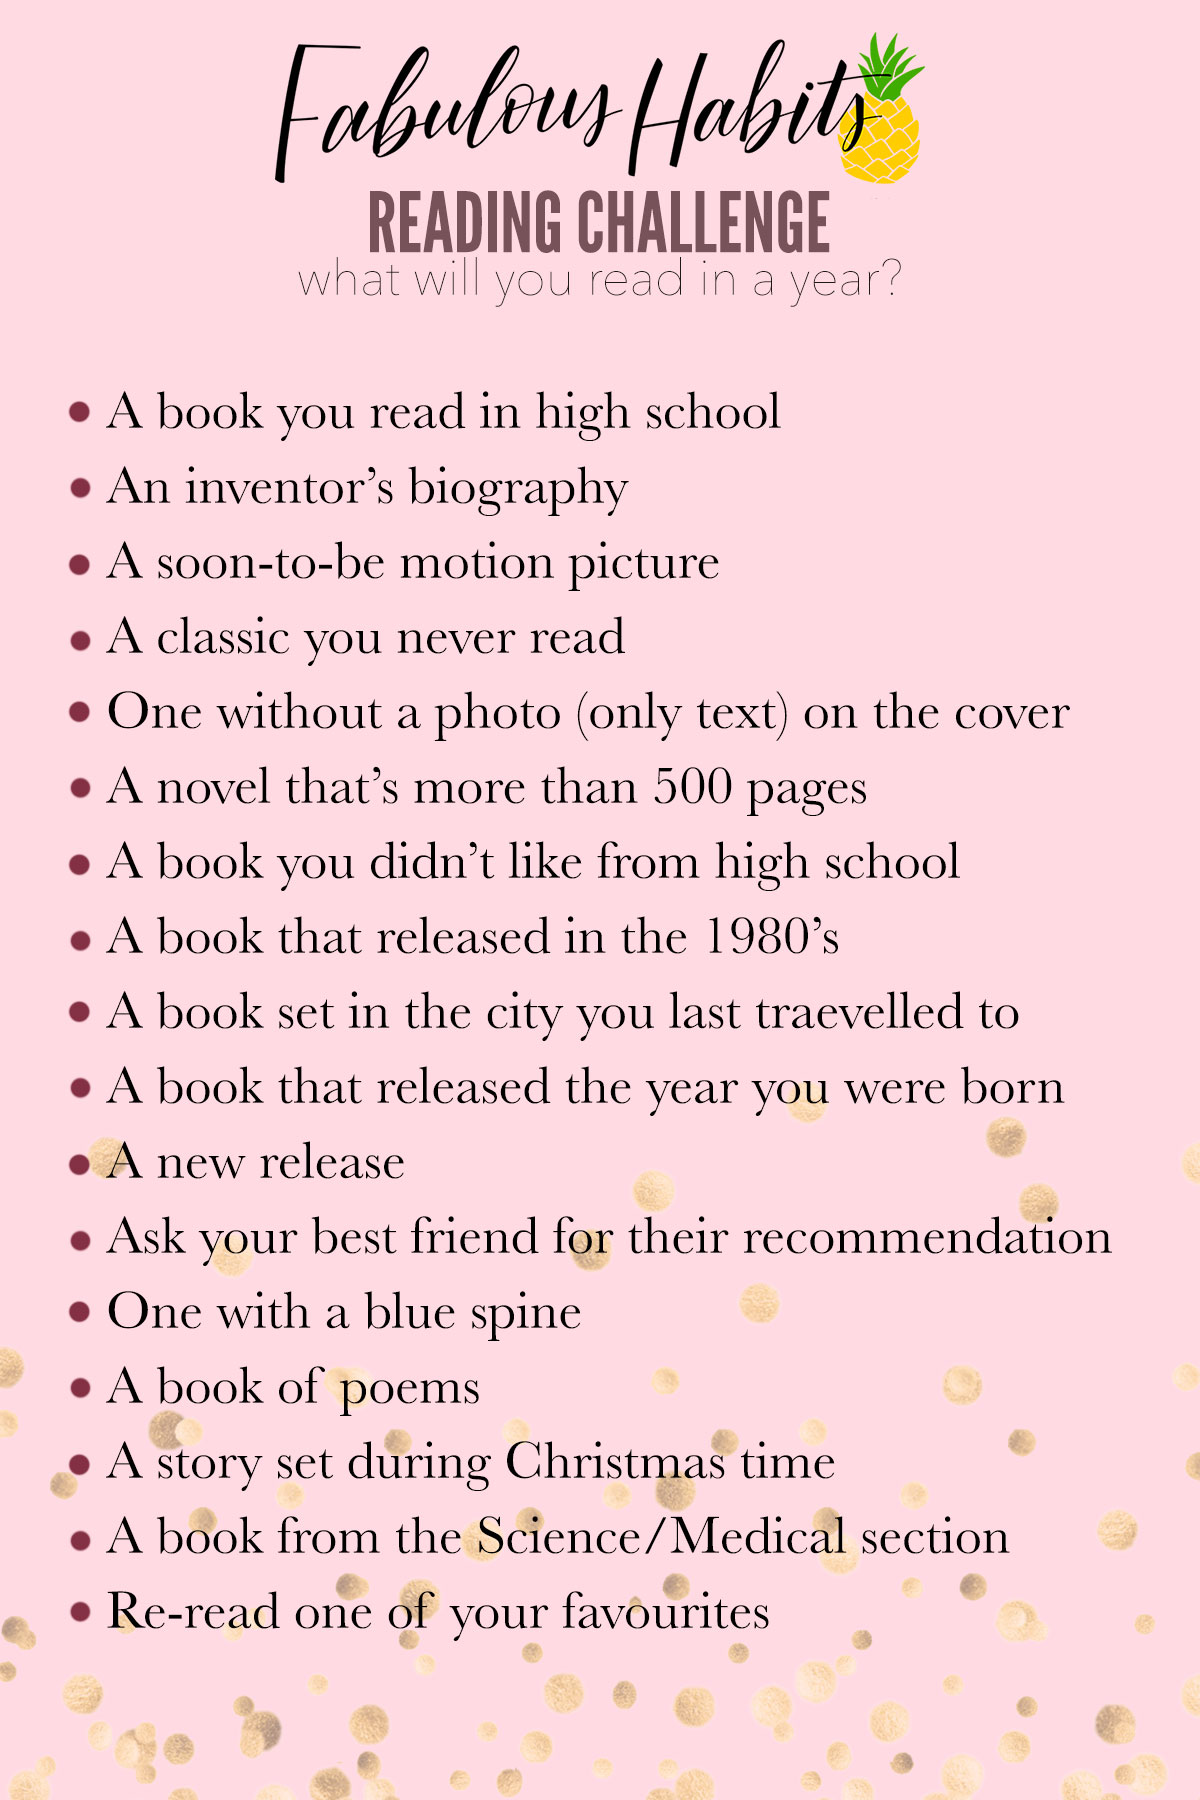 A list of books to read within the new year.